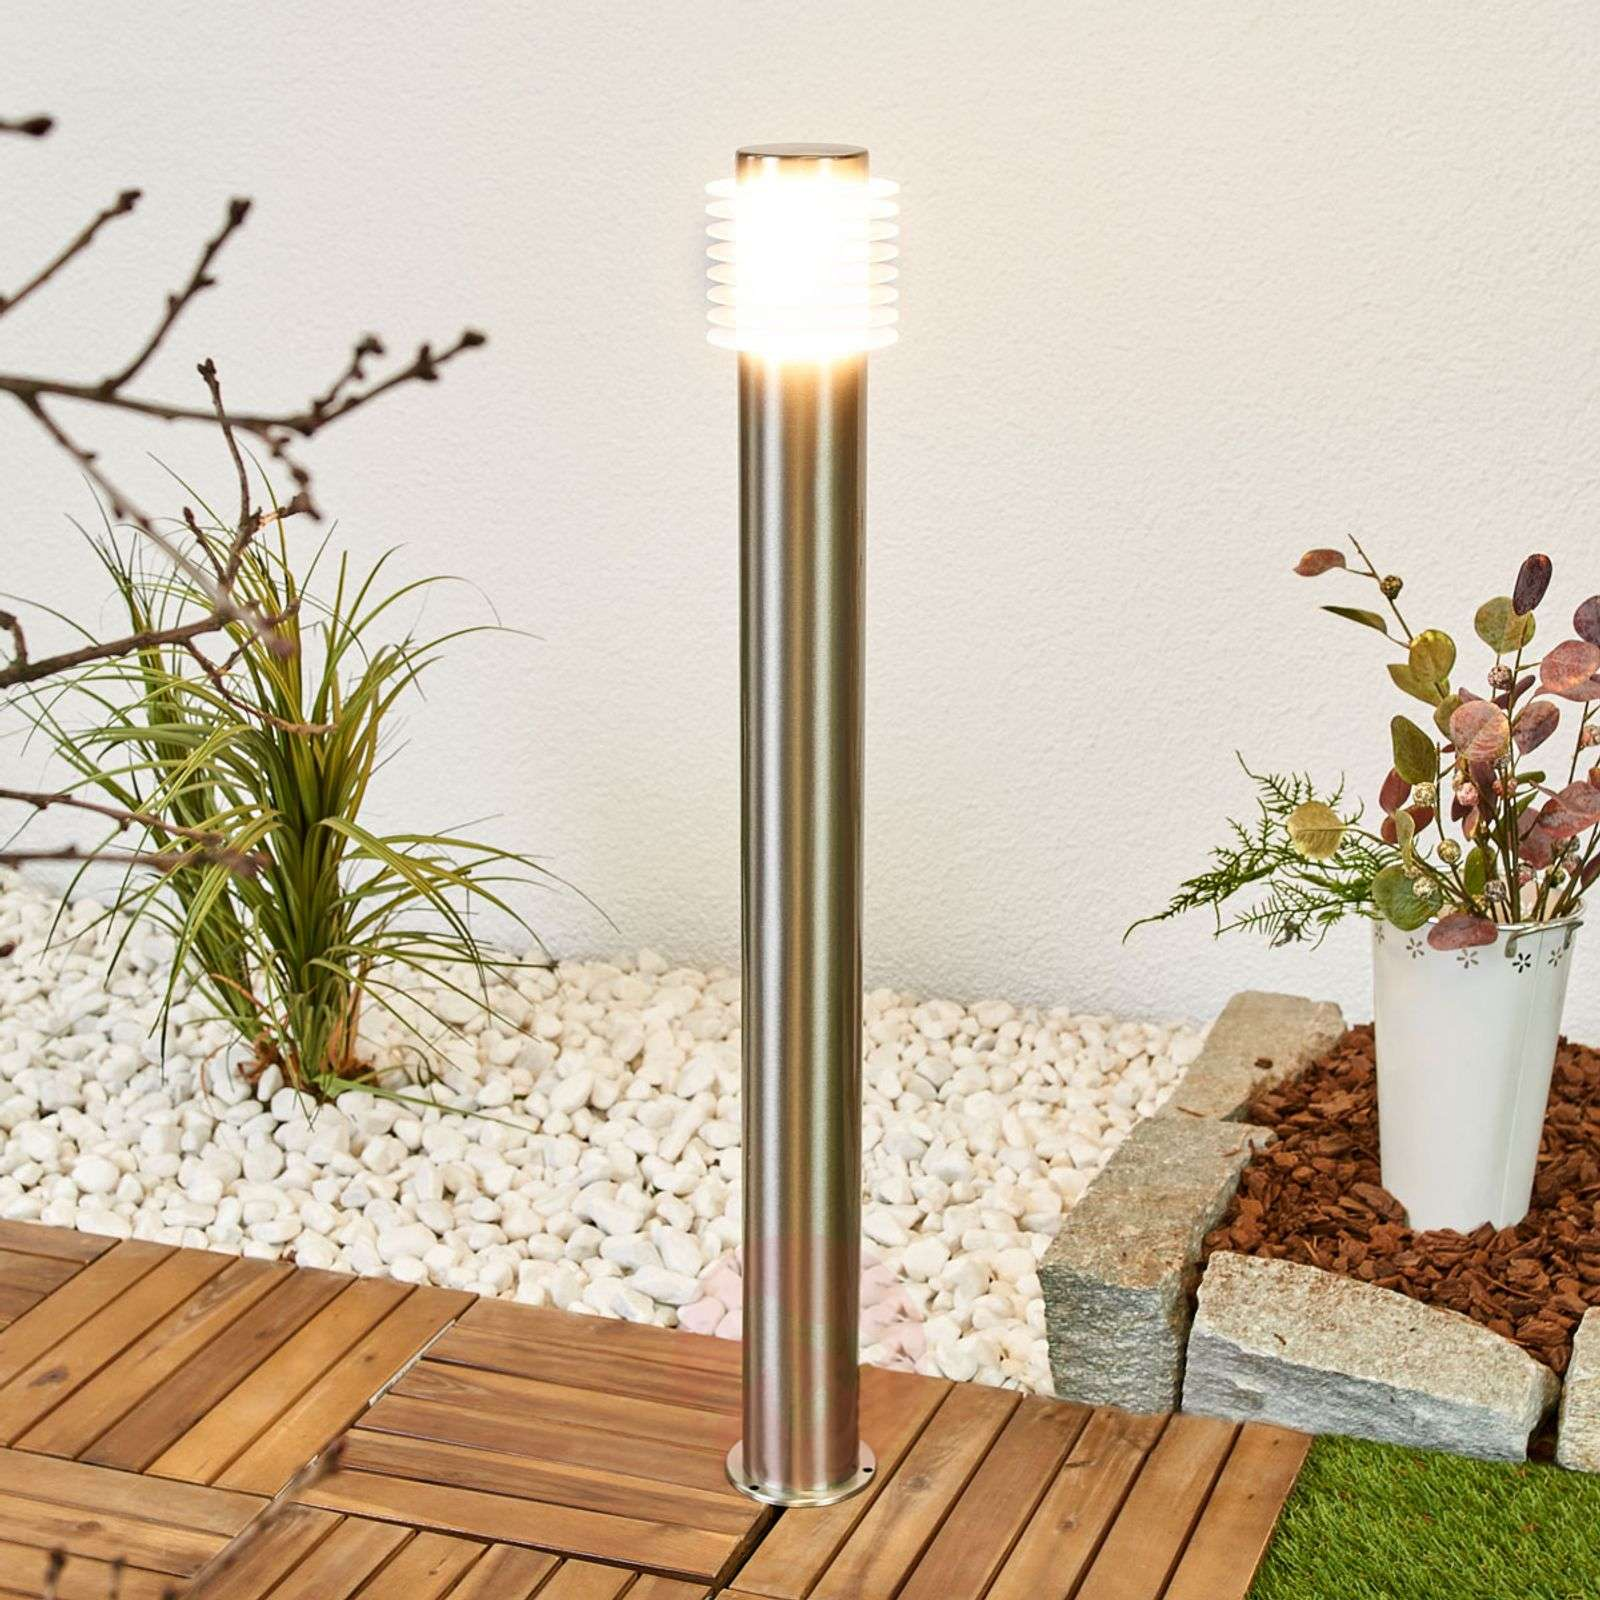 Roxy stainless steel path lamp with LEDs-9988122-01